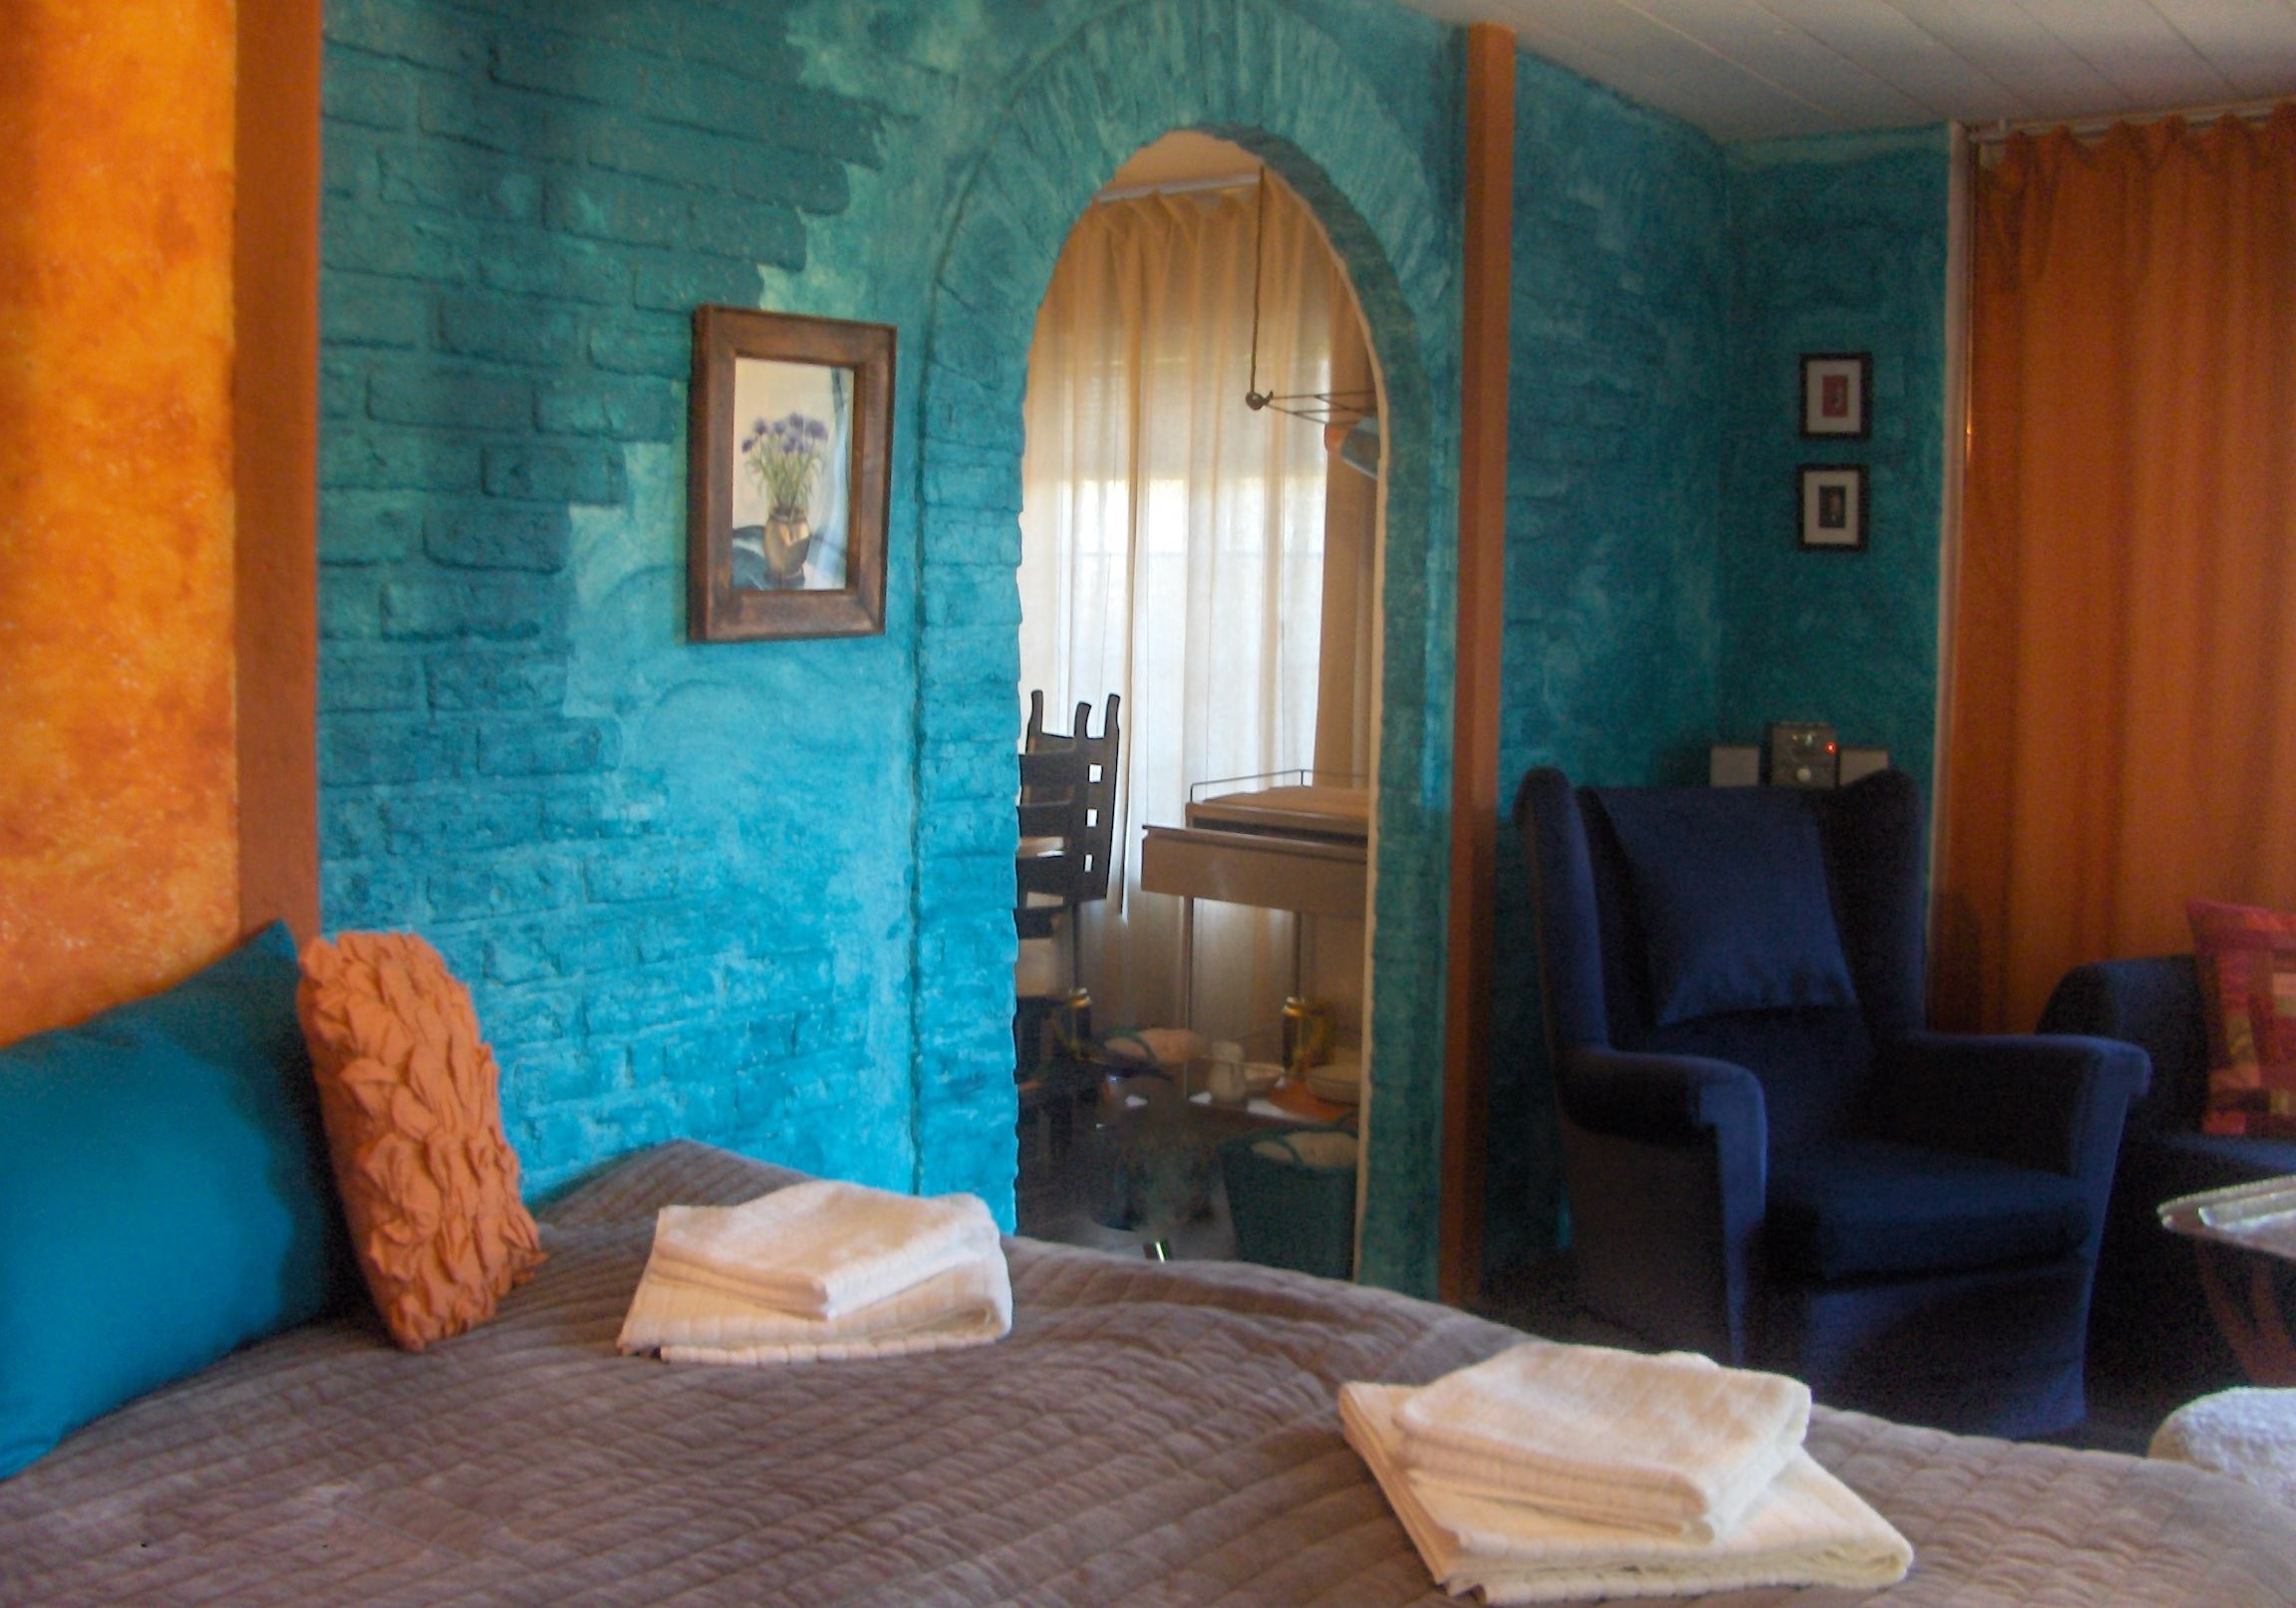 Bed & Breakfast PAUSE in central Tomelilla